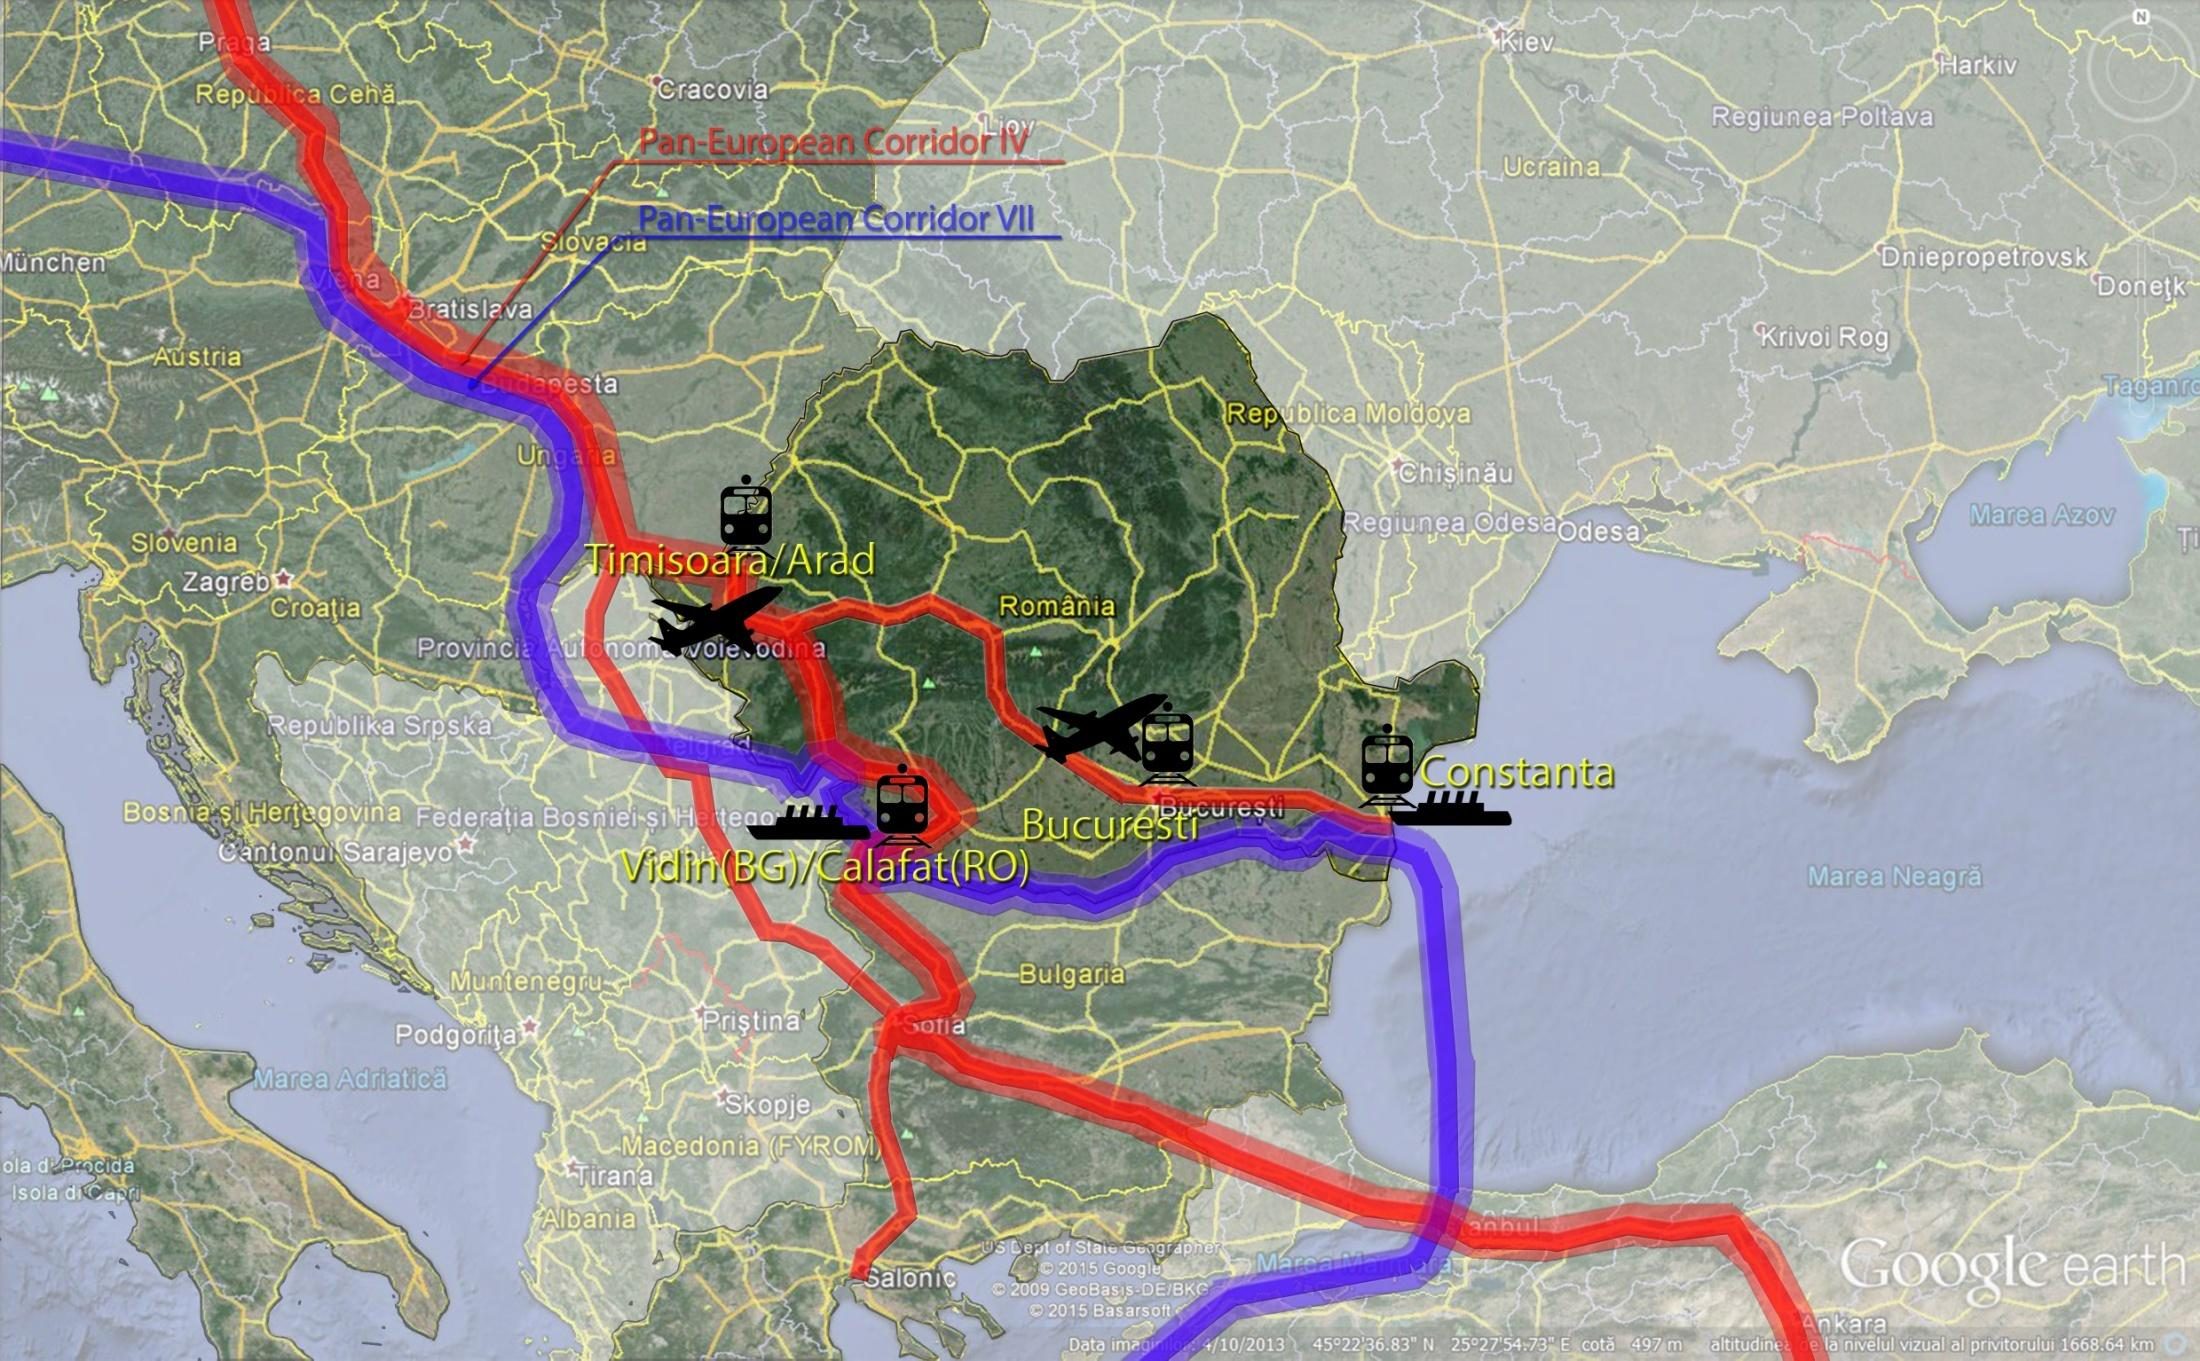 ROMANIAN SECTION On the Modern Silk Road, Romania would offer: Constanta Maritime Harbor and Calafat Fluvial Harbor, along the 7-th PanEuropean